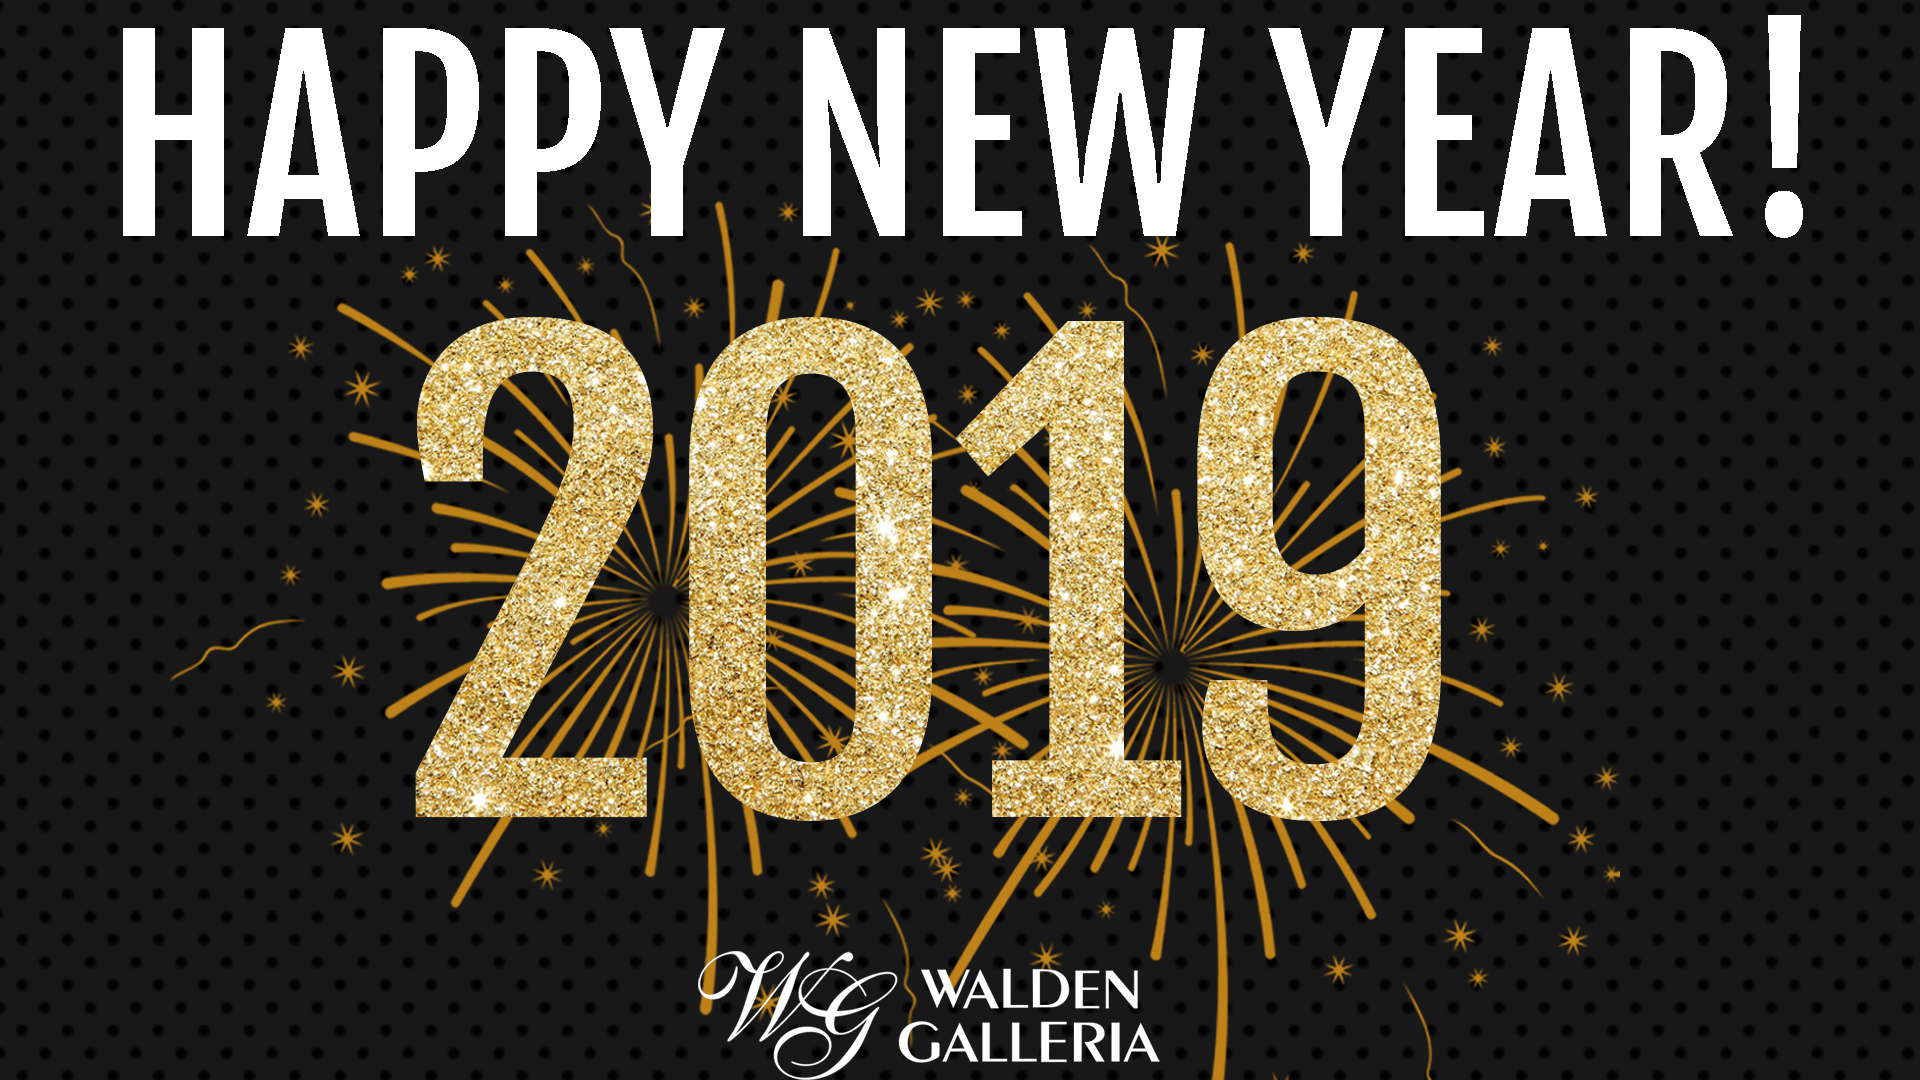 New Year S 2019 Celebrations At Walden Galleria Walden Galleria